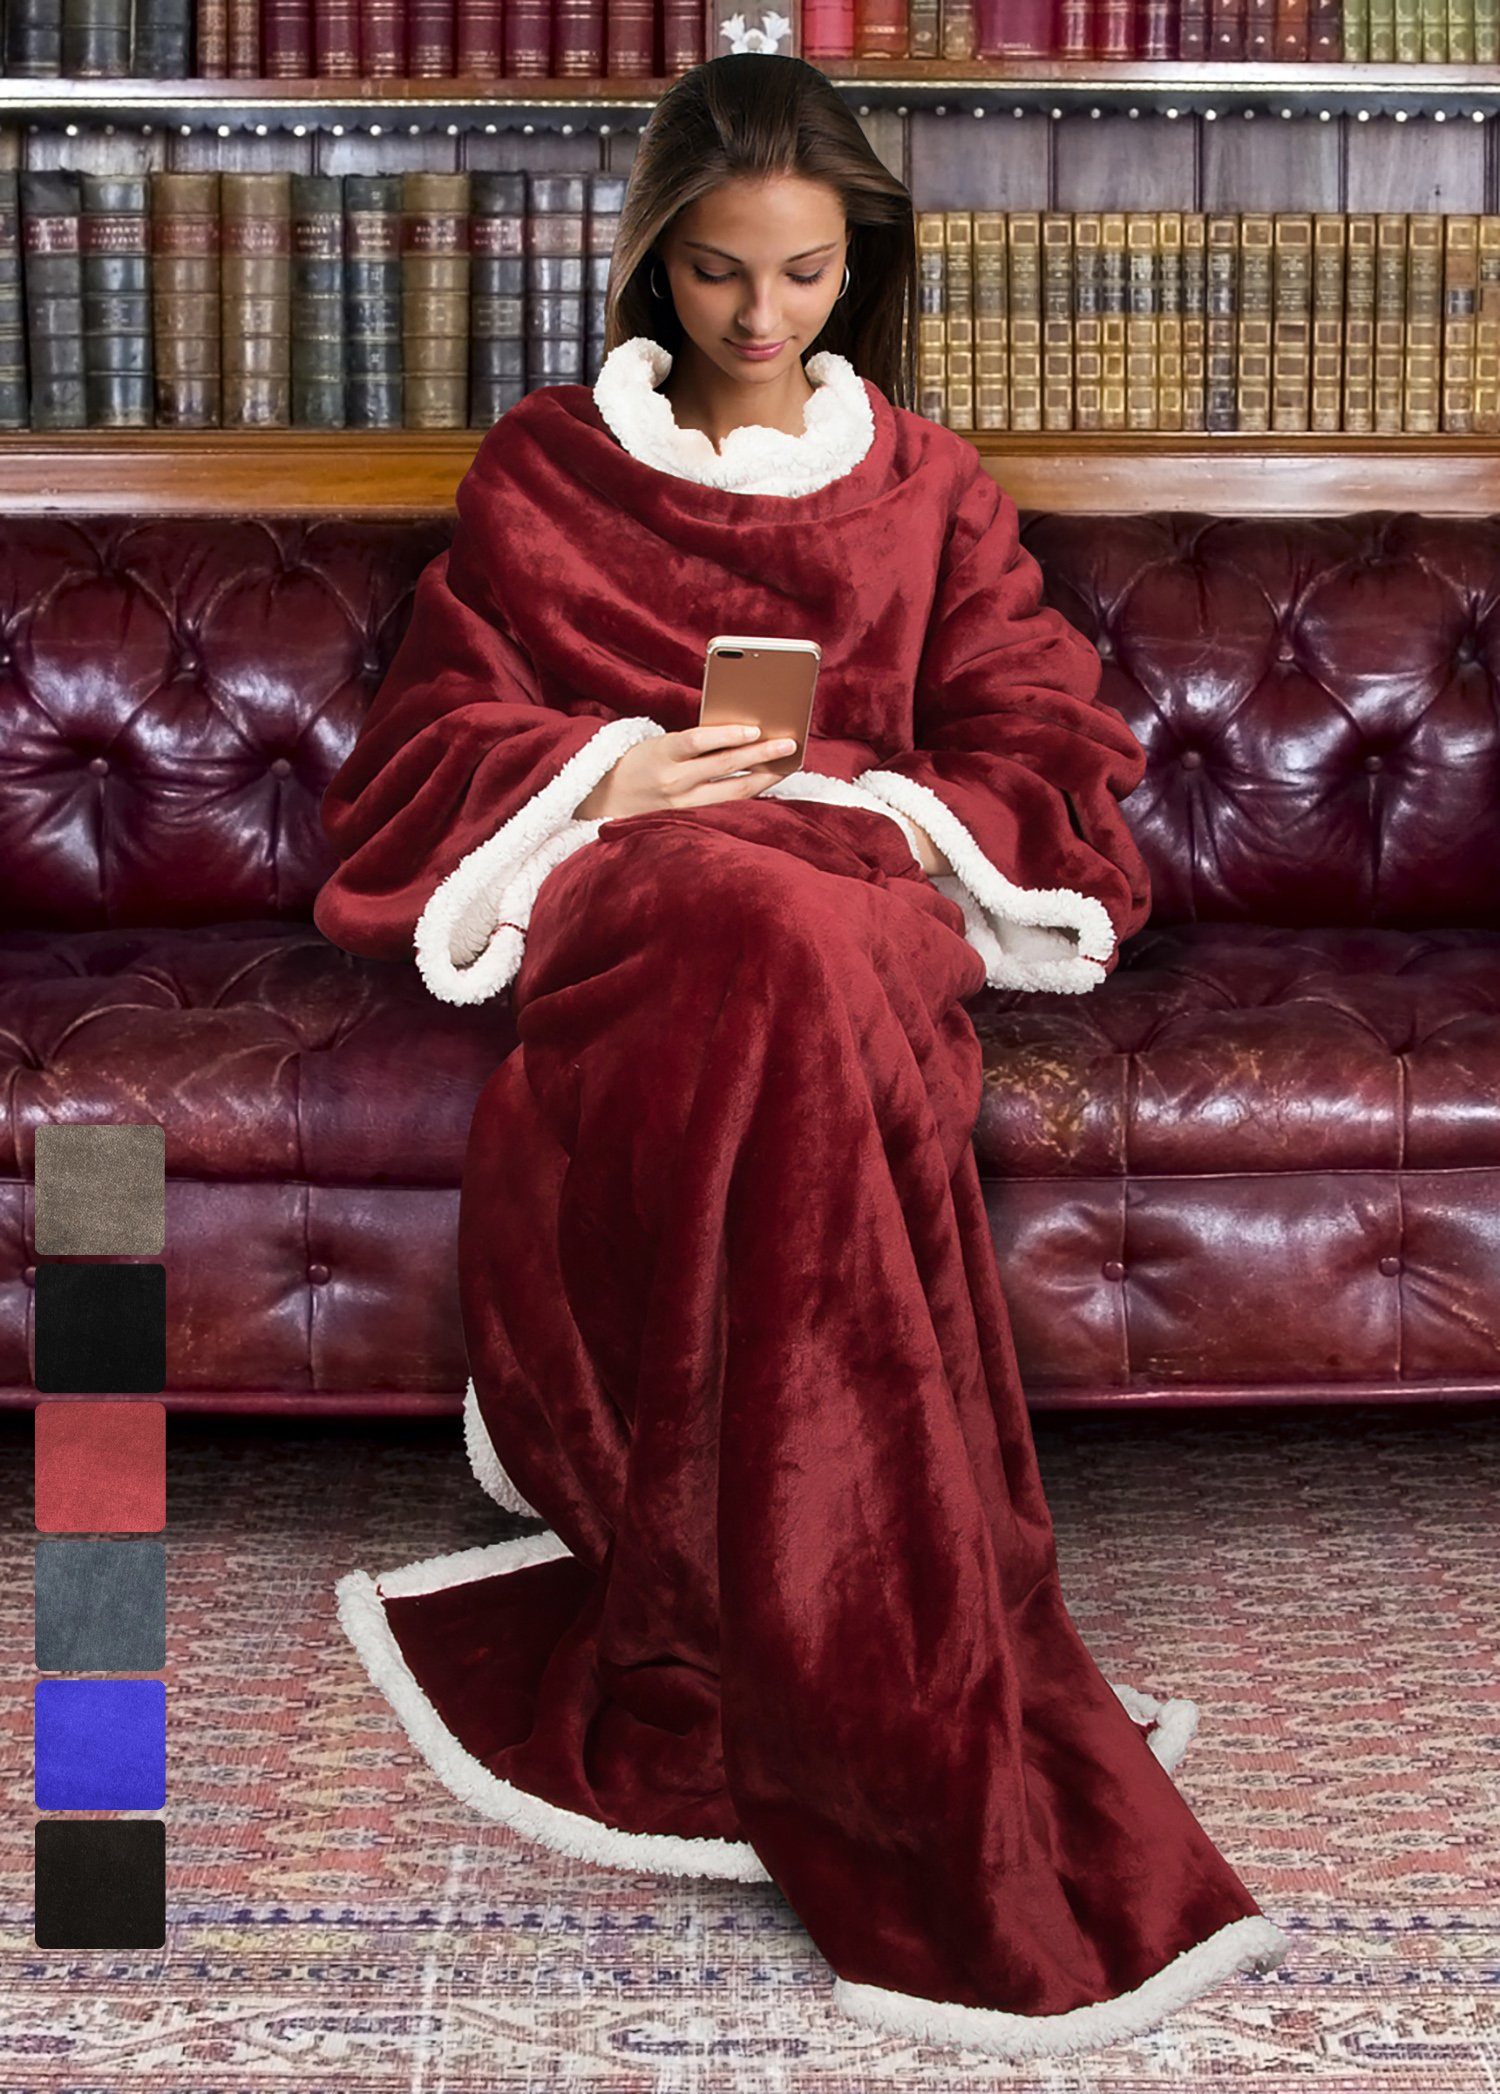 Terrania Sherpa Blanket with Sleeves for Women and Men, Super Soft Mink Fleece Wearable Adult Comfy Throw Robe TV Blanket 72'' x 55''   Catalonia series by Wine